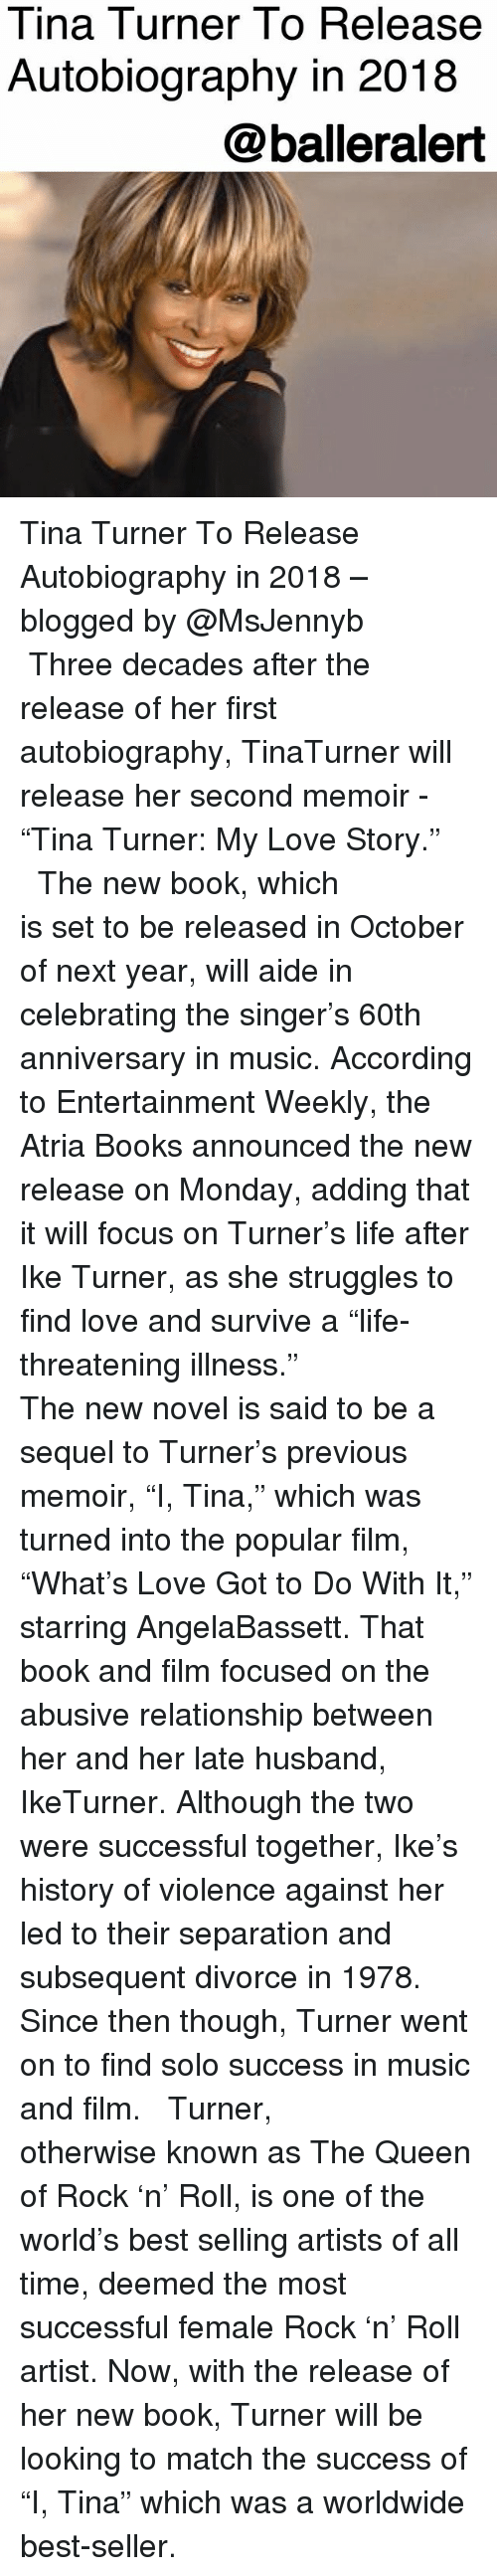 "Books, Life, and Love: Tina Turner To Release  Autobiography in 2018  @balleralert Tina Turner To Release Autobiography in 2018 – blogged by @MsJennyb ⠀⠀⠀⠀⠀⠀⠀ ⠀⠀⠀⠀⠀⠀⠀ Three decades after the release of her first autobiography, TinaTurner will release her second memoir - ""Tina Turner: My Love Story."" ⠀⠀⠀⠀⠀⠀⠀ ⠀⠀⠀⠀⠀⠀⠀ The new book, which is set to be released in October of next year, will aide in celebrating the singer's 60th anniversary in music. According to Entertainment Weekly, the Atria Books announced the new release on Monday, adding that it will focus on Turner's life after Ike Turner, as she struggles to find love and survive a ""life-threatening illness."" ⠀⠀⠀⠀⠀⠀⠀ ⠀⠀⠀⠀⠀⠀⠀ The new novel is said to be a sequel to Turner's previous memoir, ""I, Tina,"" which was turned into the popular film, ""What's Love Got to Do With It,"" starring AngelaBassett. That book and film focused on the abusive relationship between her and her late husband, IkeTurner. Although the two were successful together, Ike's history of violence against her led to their separation and subsequent divorce in 1978. Since then though, Turner went on to find solo success in music and film. ⠀⠀⠀⠀⠀⠀⠀ ⠀⠀⠀⠀⠀⠀⠀ Turner, otherwise known as The Queen of Rock 'n' Roll, is one of the world's best selling artists of all time, deemed the most successful female Rock 'n' Roll artist. Now, with the release of her new book, Turner will be looking to match the success of ""I, Tina"" which was a worldwide best-seller."